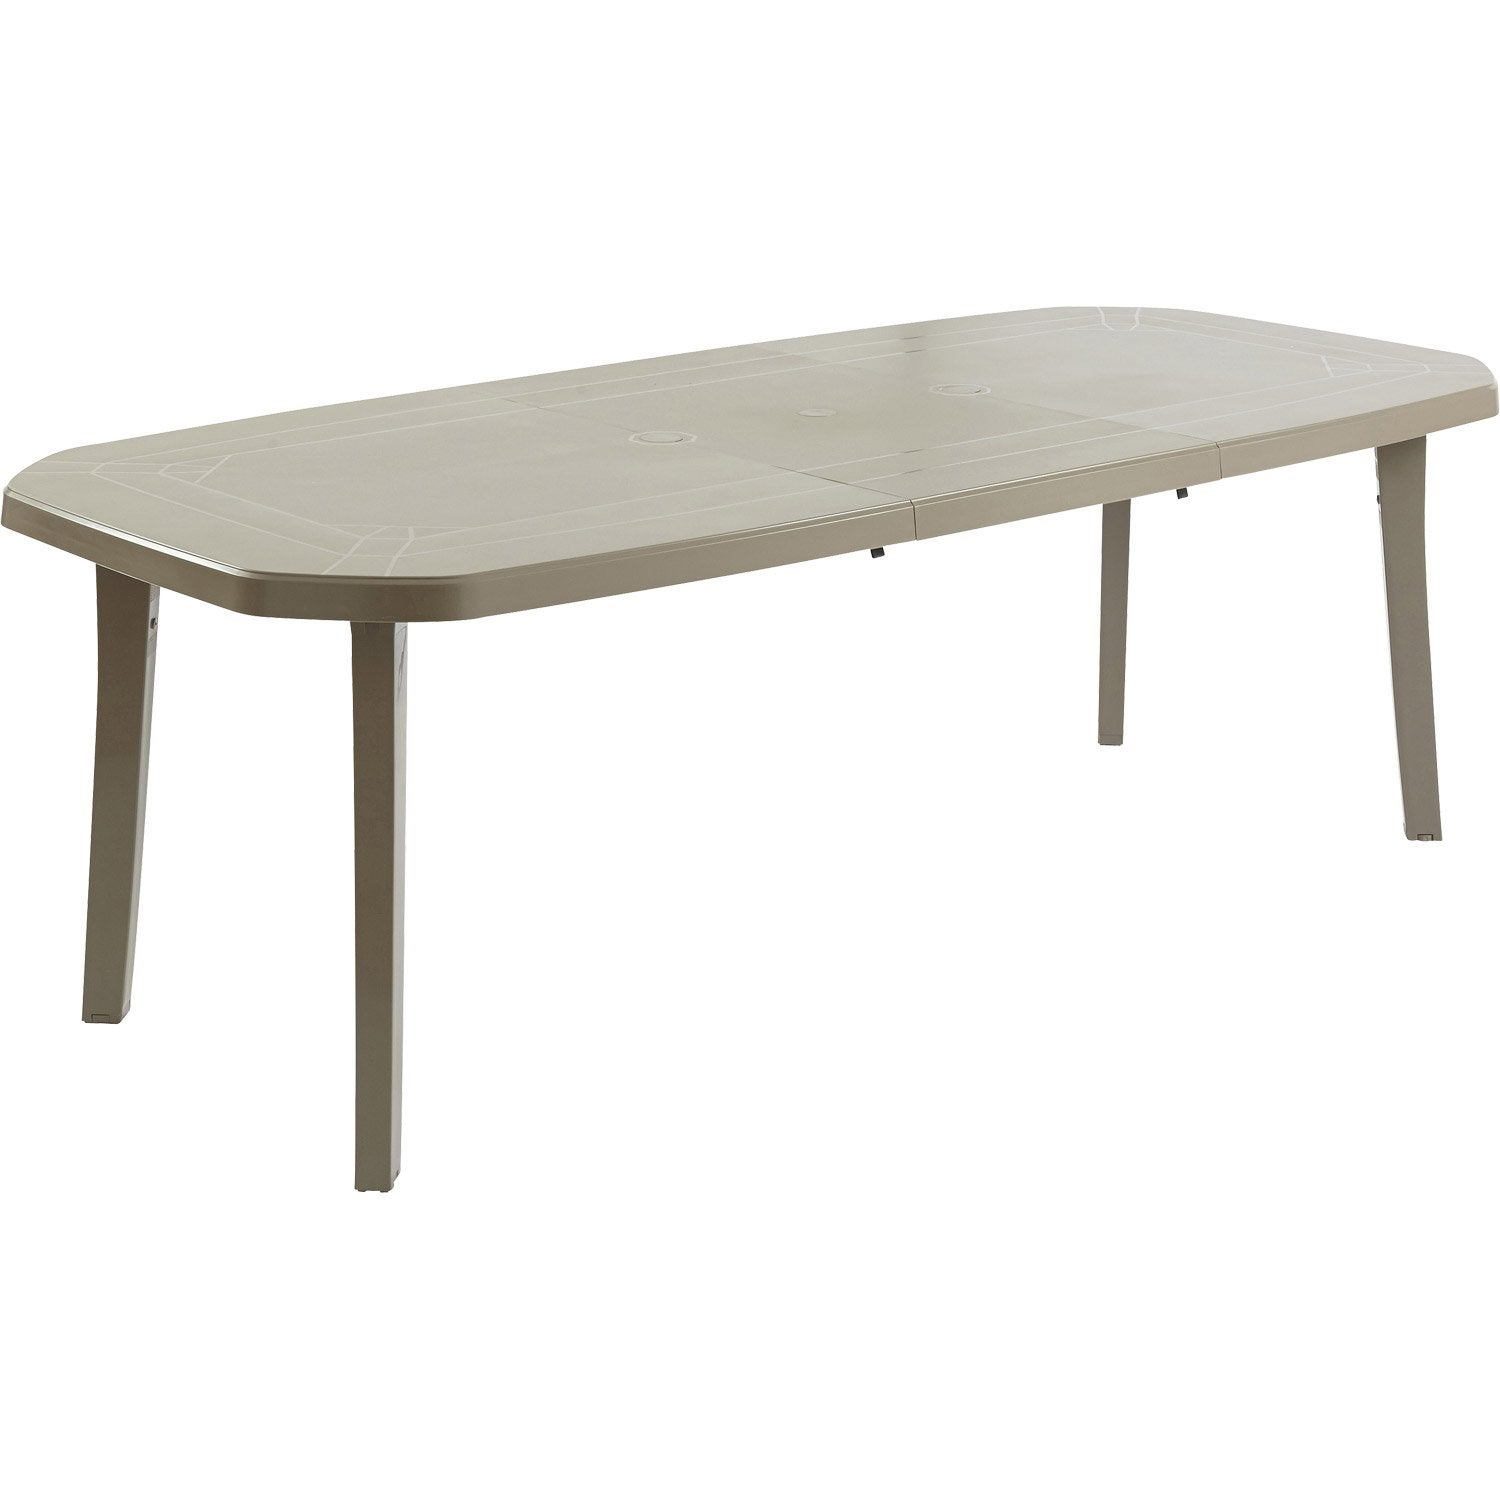 Table de jardin grosfillex miami rectangulaire taupe 10 for Table exterieur 10 personnes